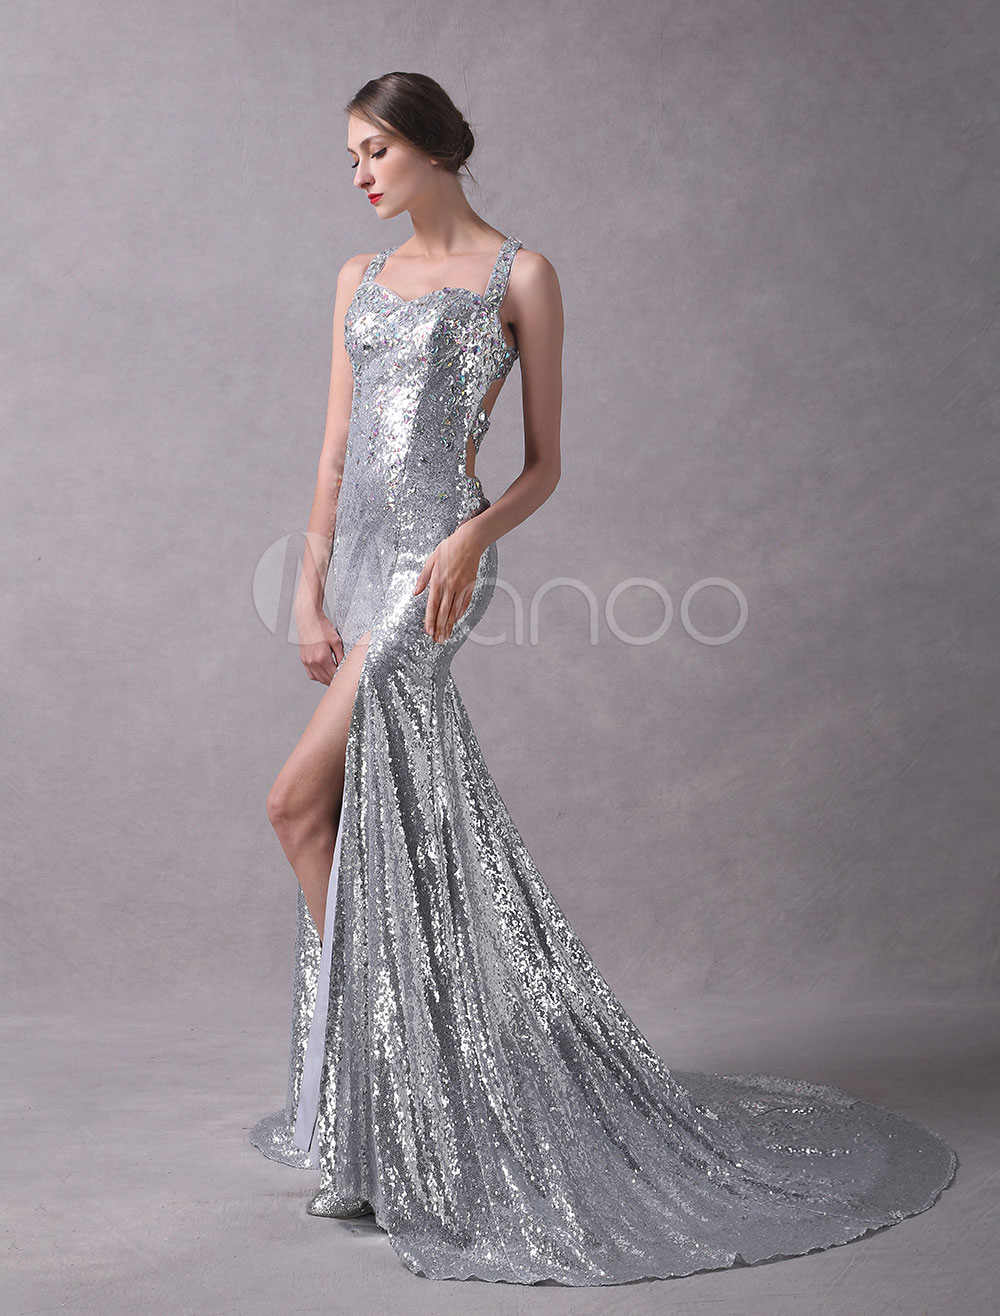 Silver Evening Dresses Sequined Beaded Glitter Sexy High Split Cross Back Formal Occasion Dresses With Train